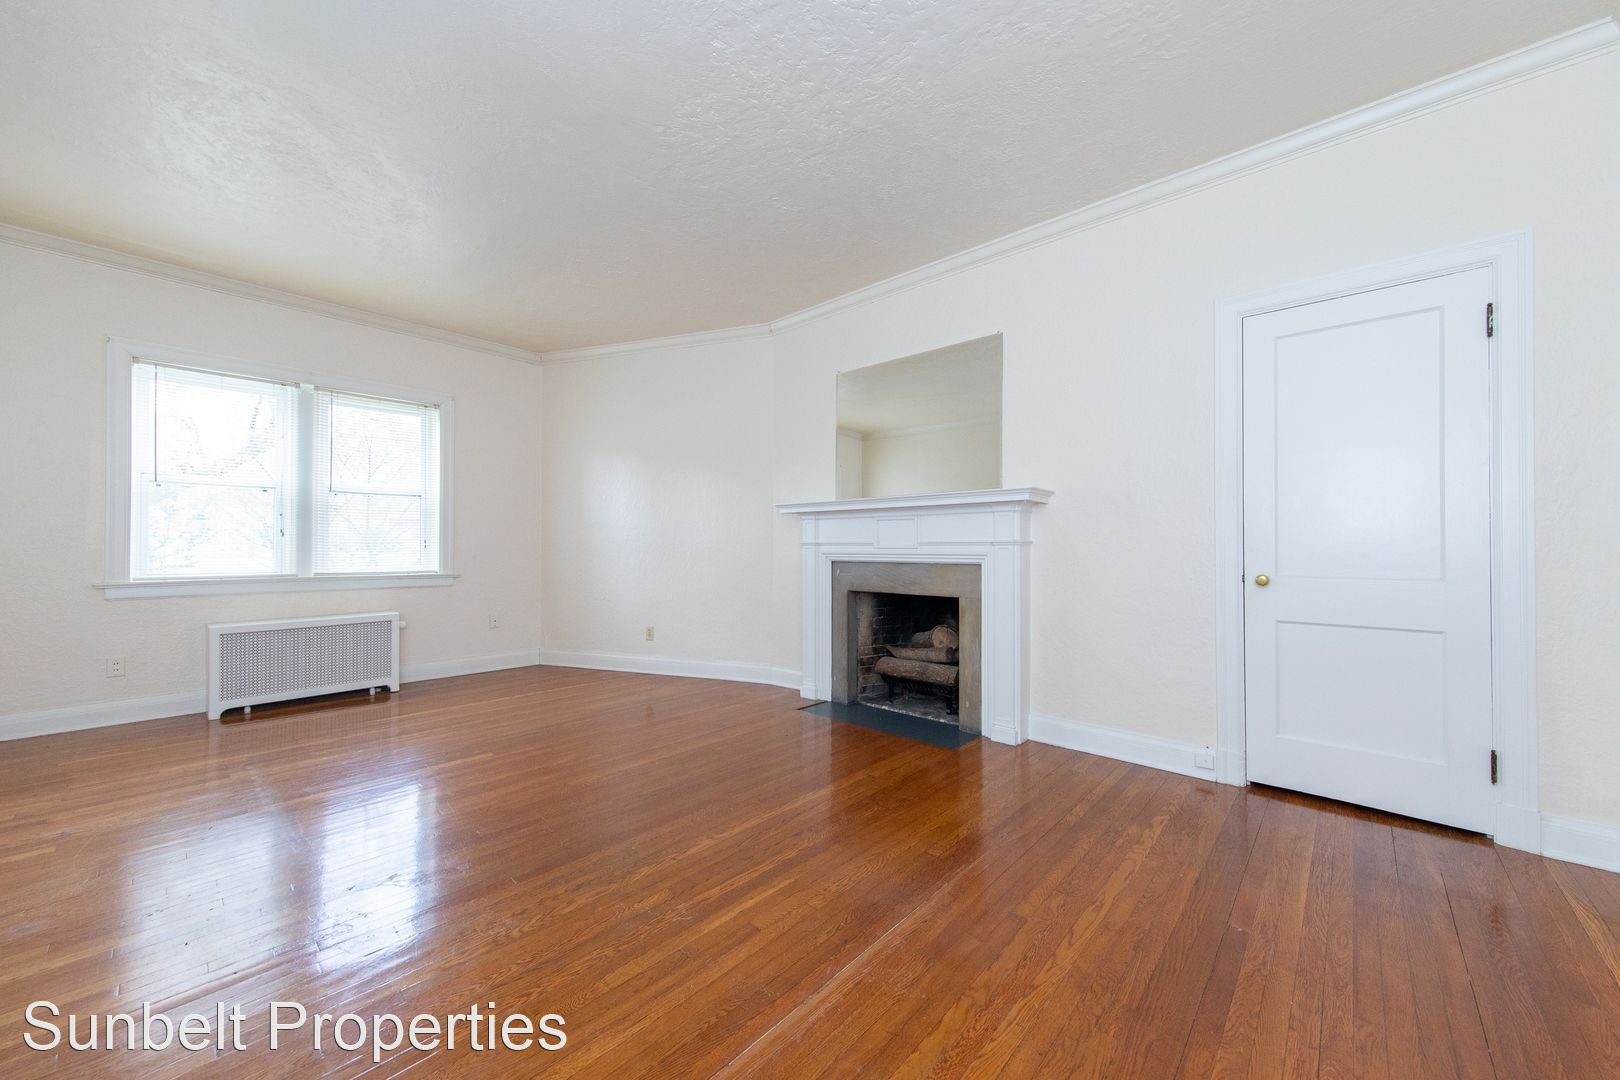 1926 Market Ave N - 650USD / month